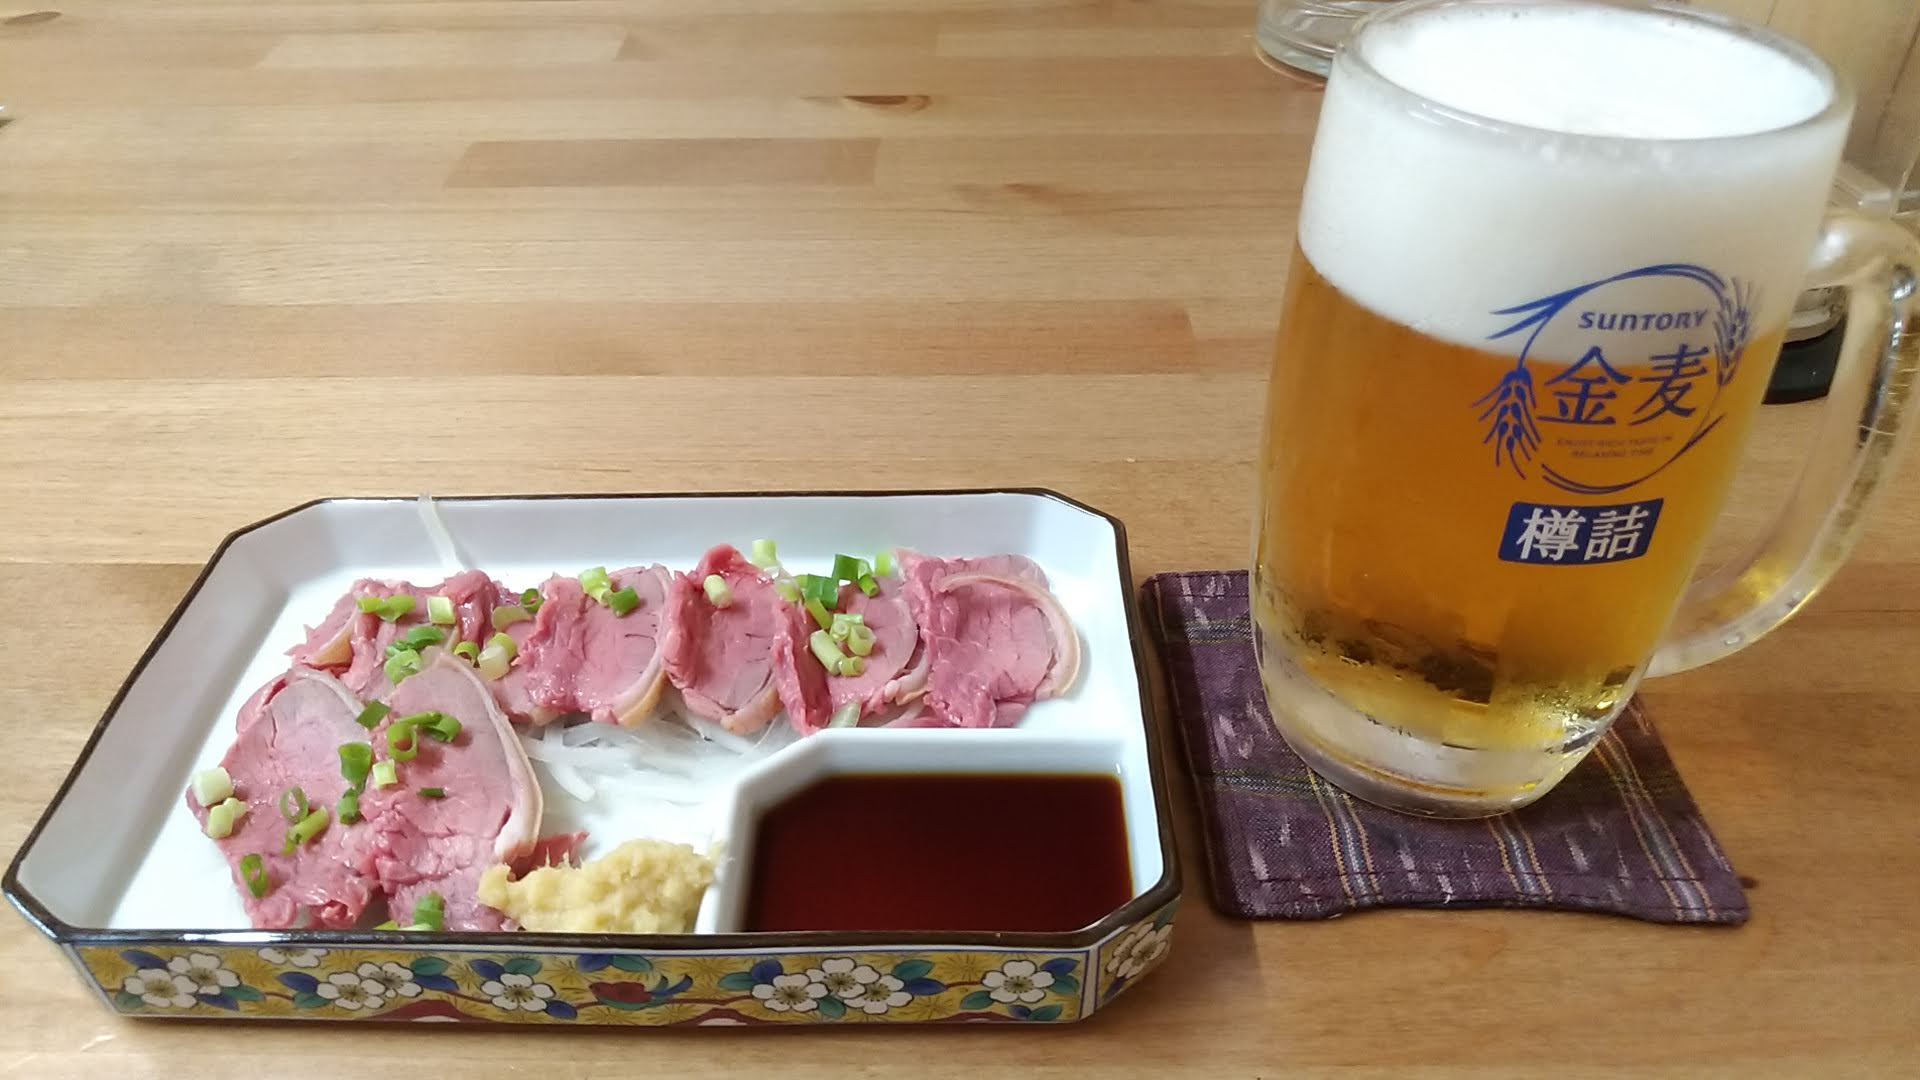 Goat sashimi and beer